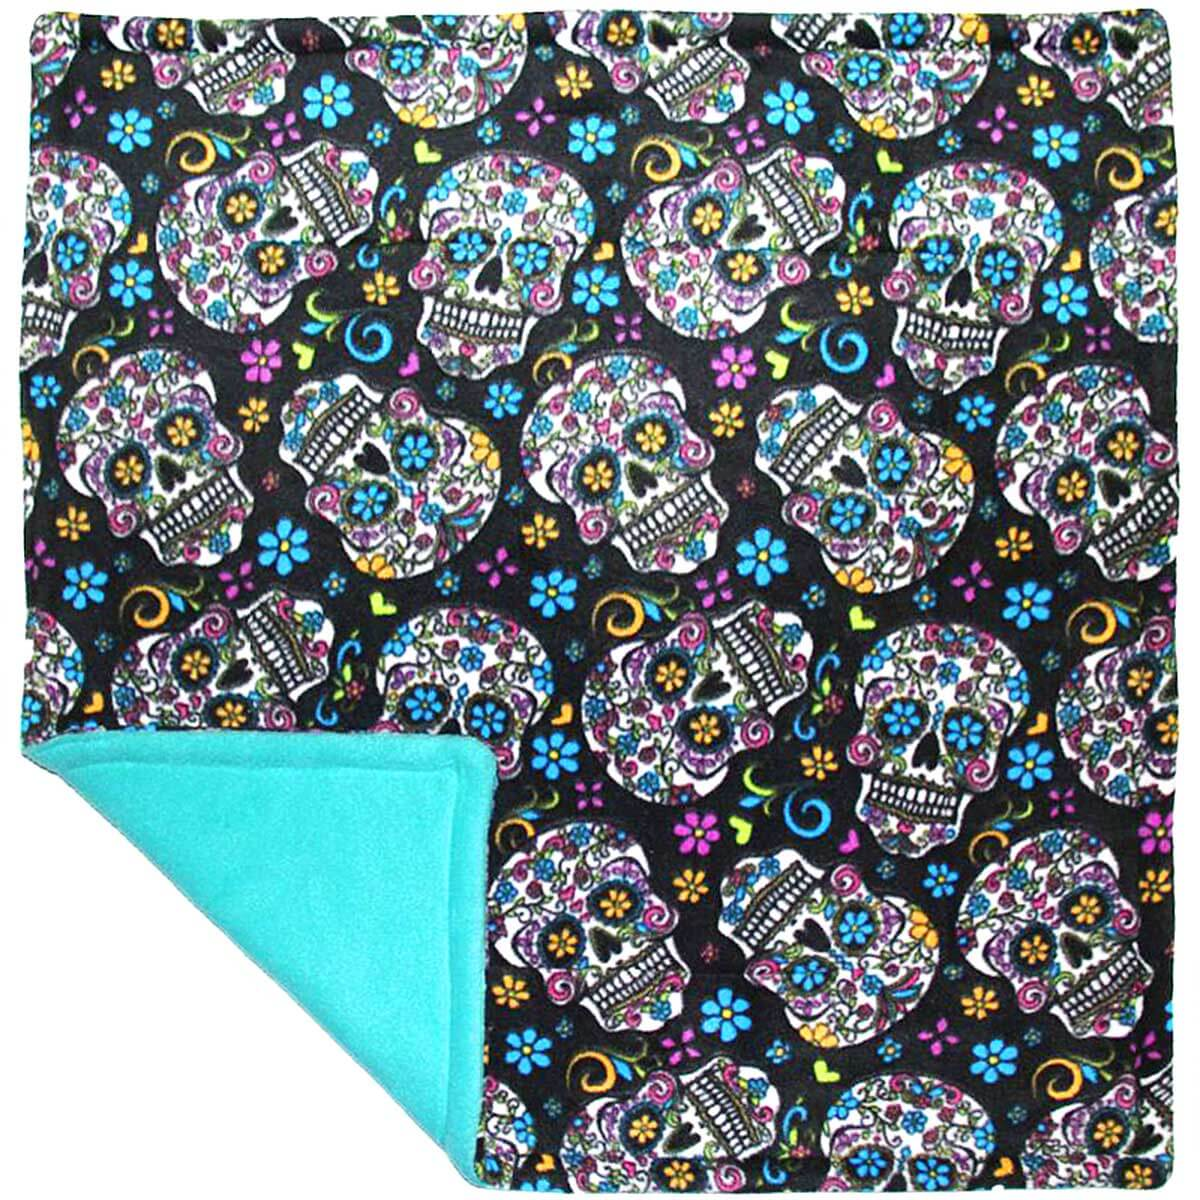 Guinea Pig Cage Liner for Cavy Grazer in Black Sugar Skulls